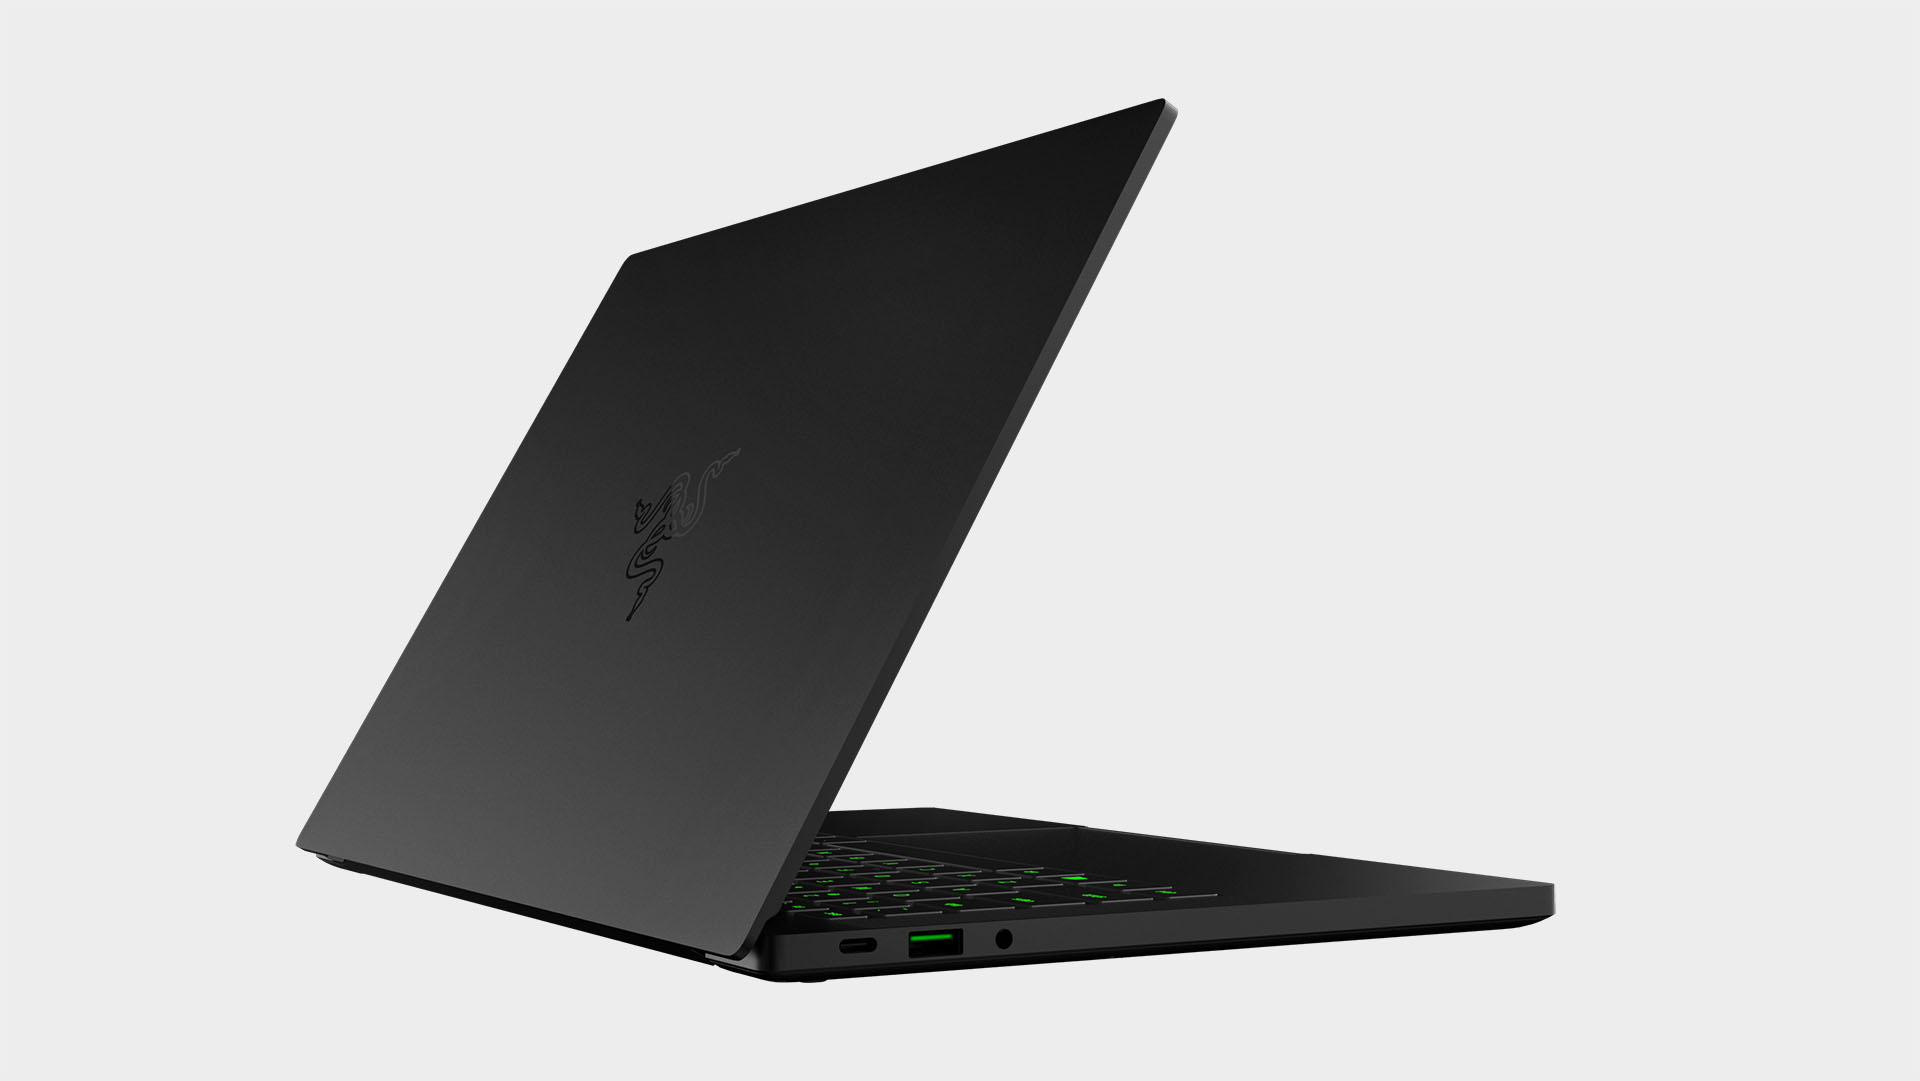 Get ready for a gorgeous 14-inch Razer AMD Ryzen gaming laptop